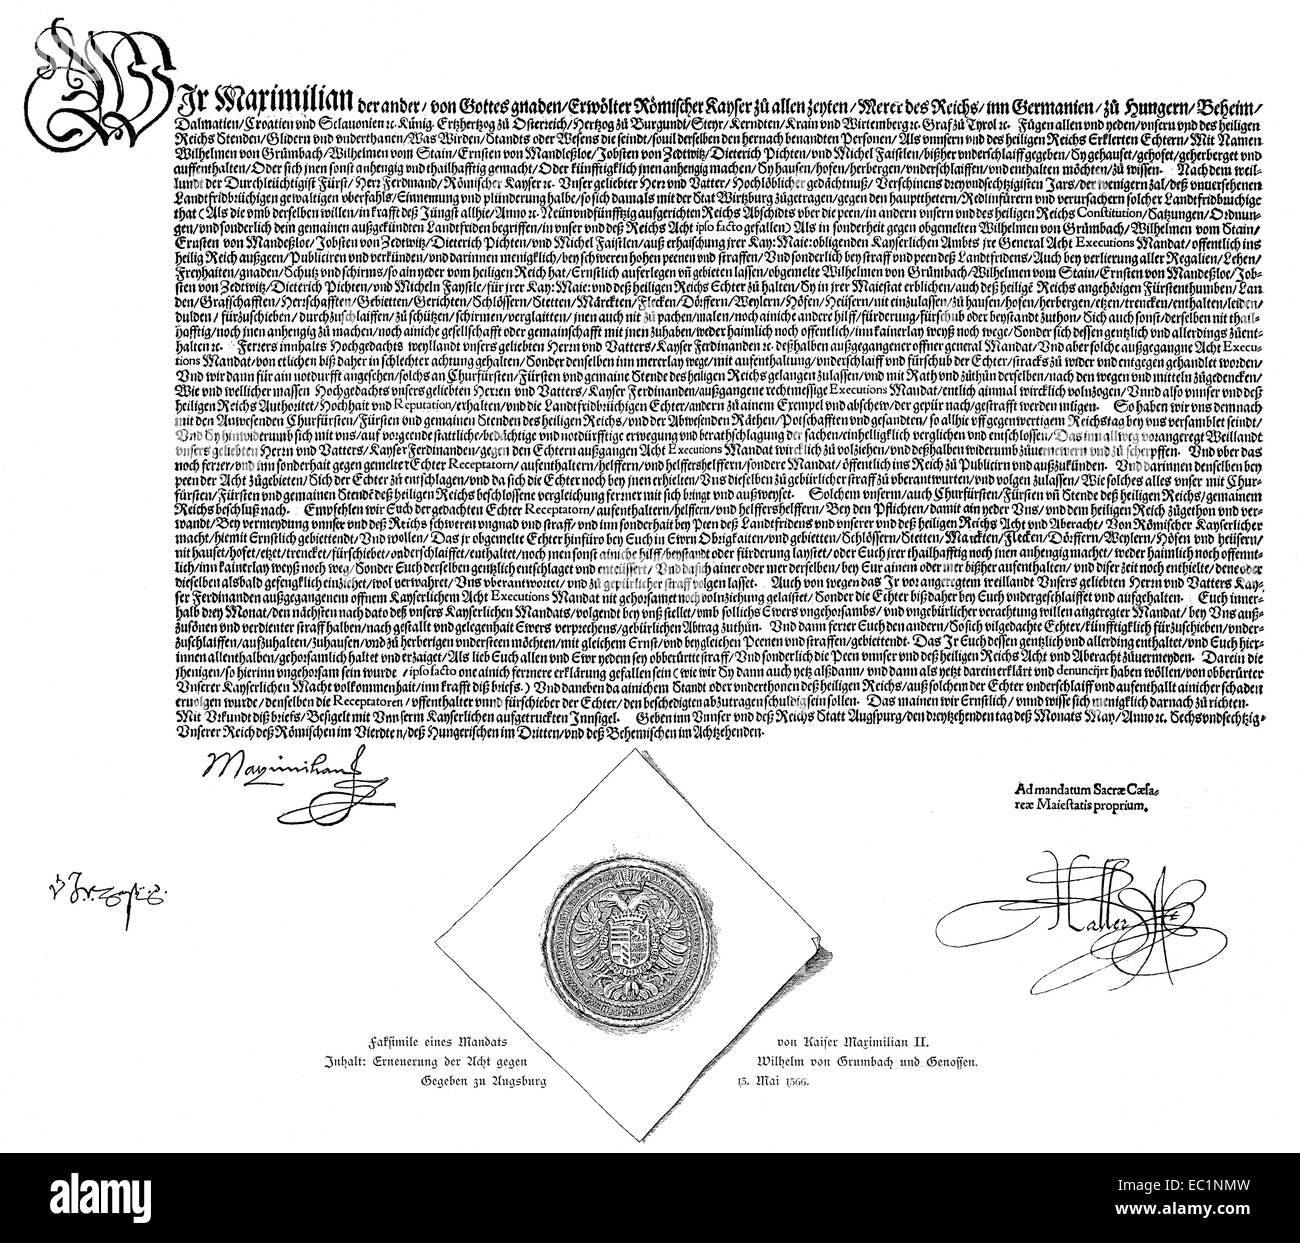 Imperial ban signed on 13 May 1566 by Emperor Maximilian II against Duke John Frederick II, - Stock Image